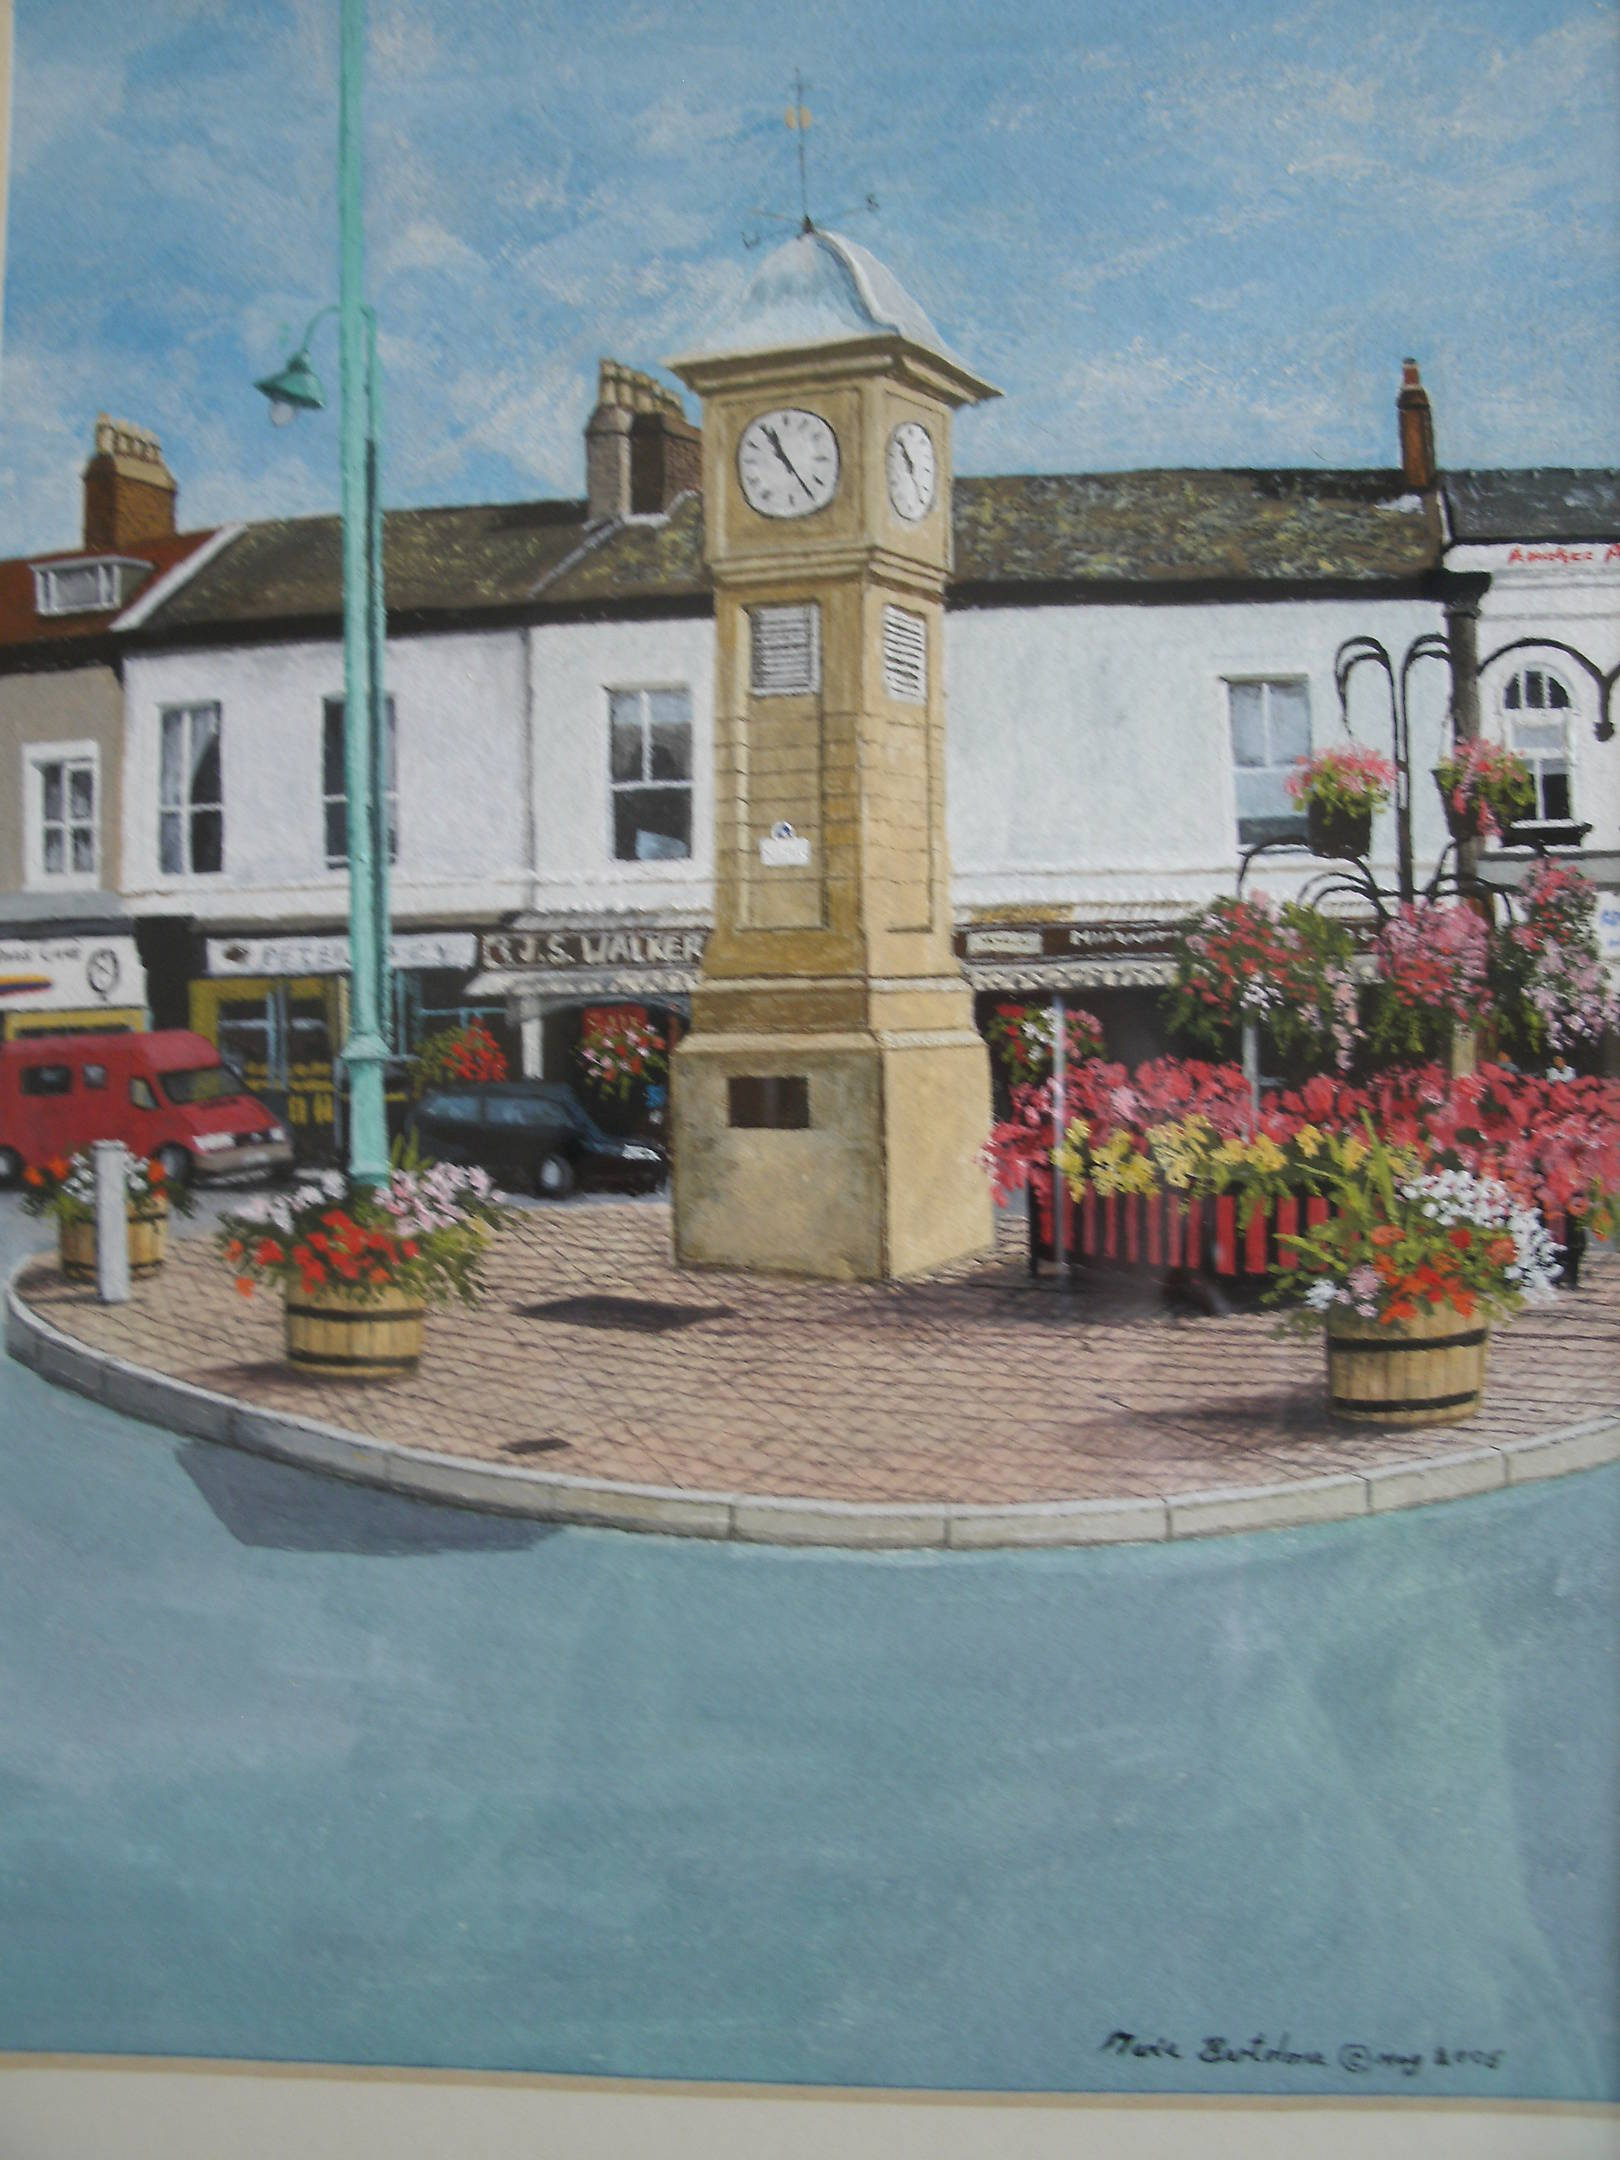 Fleetwood Town Centre And Clock, United Kingdom, England